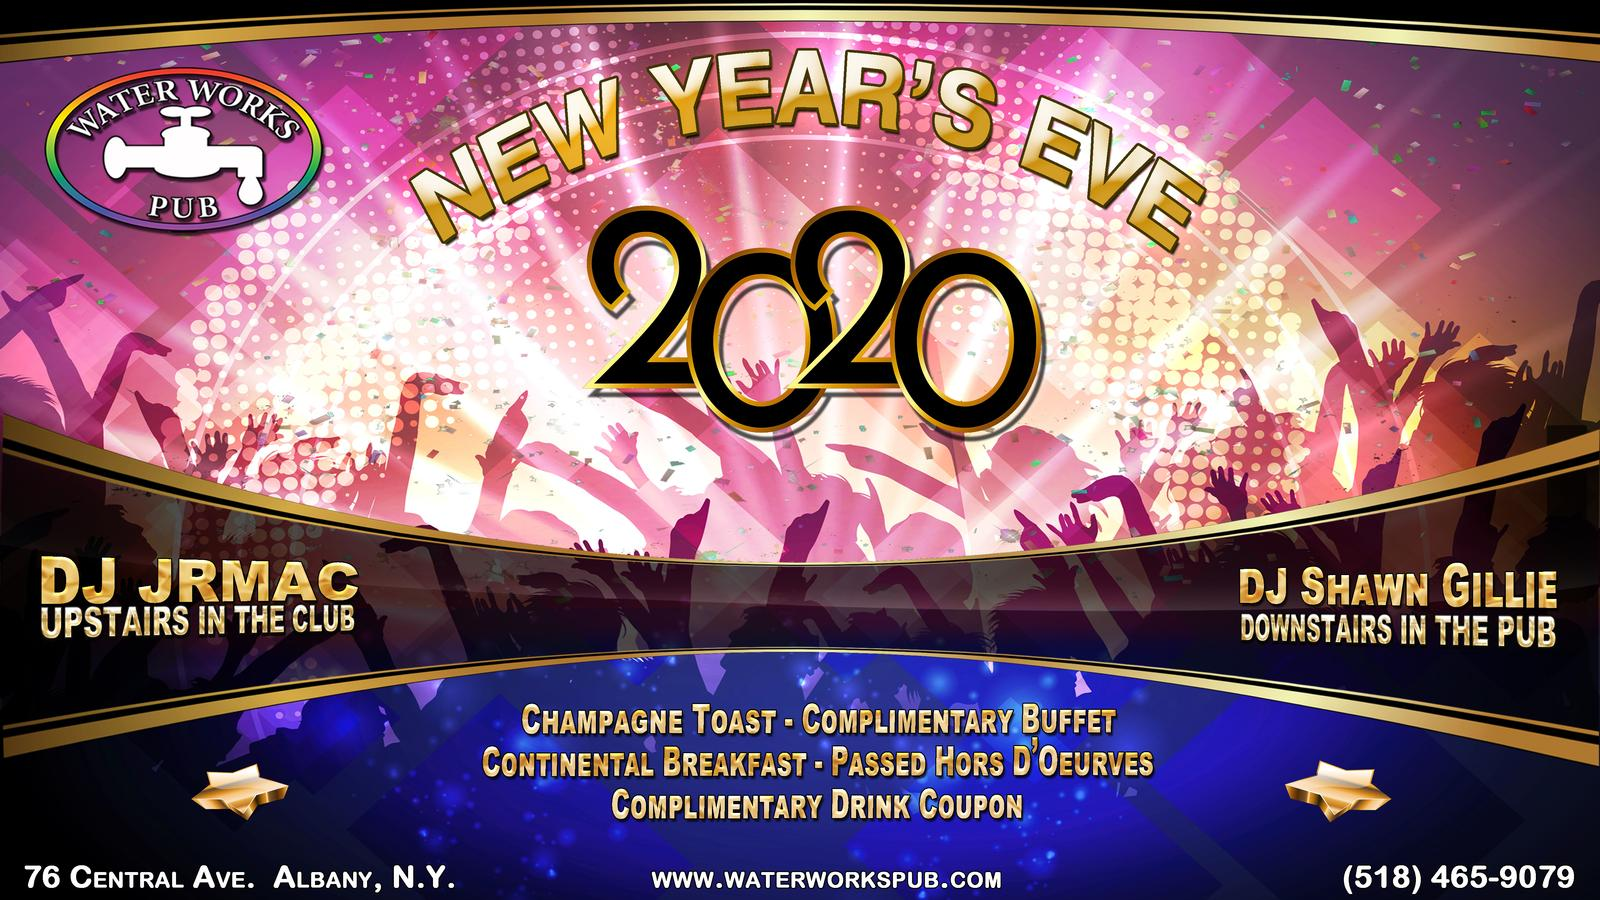 New Year's Eve at Waterworks Pub